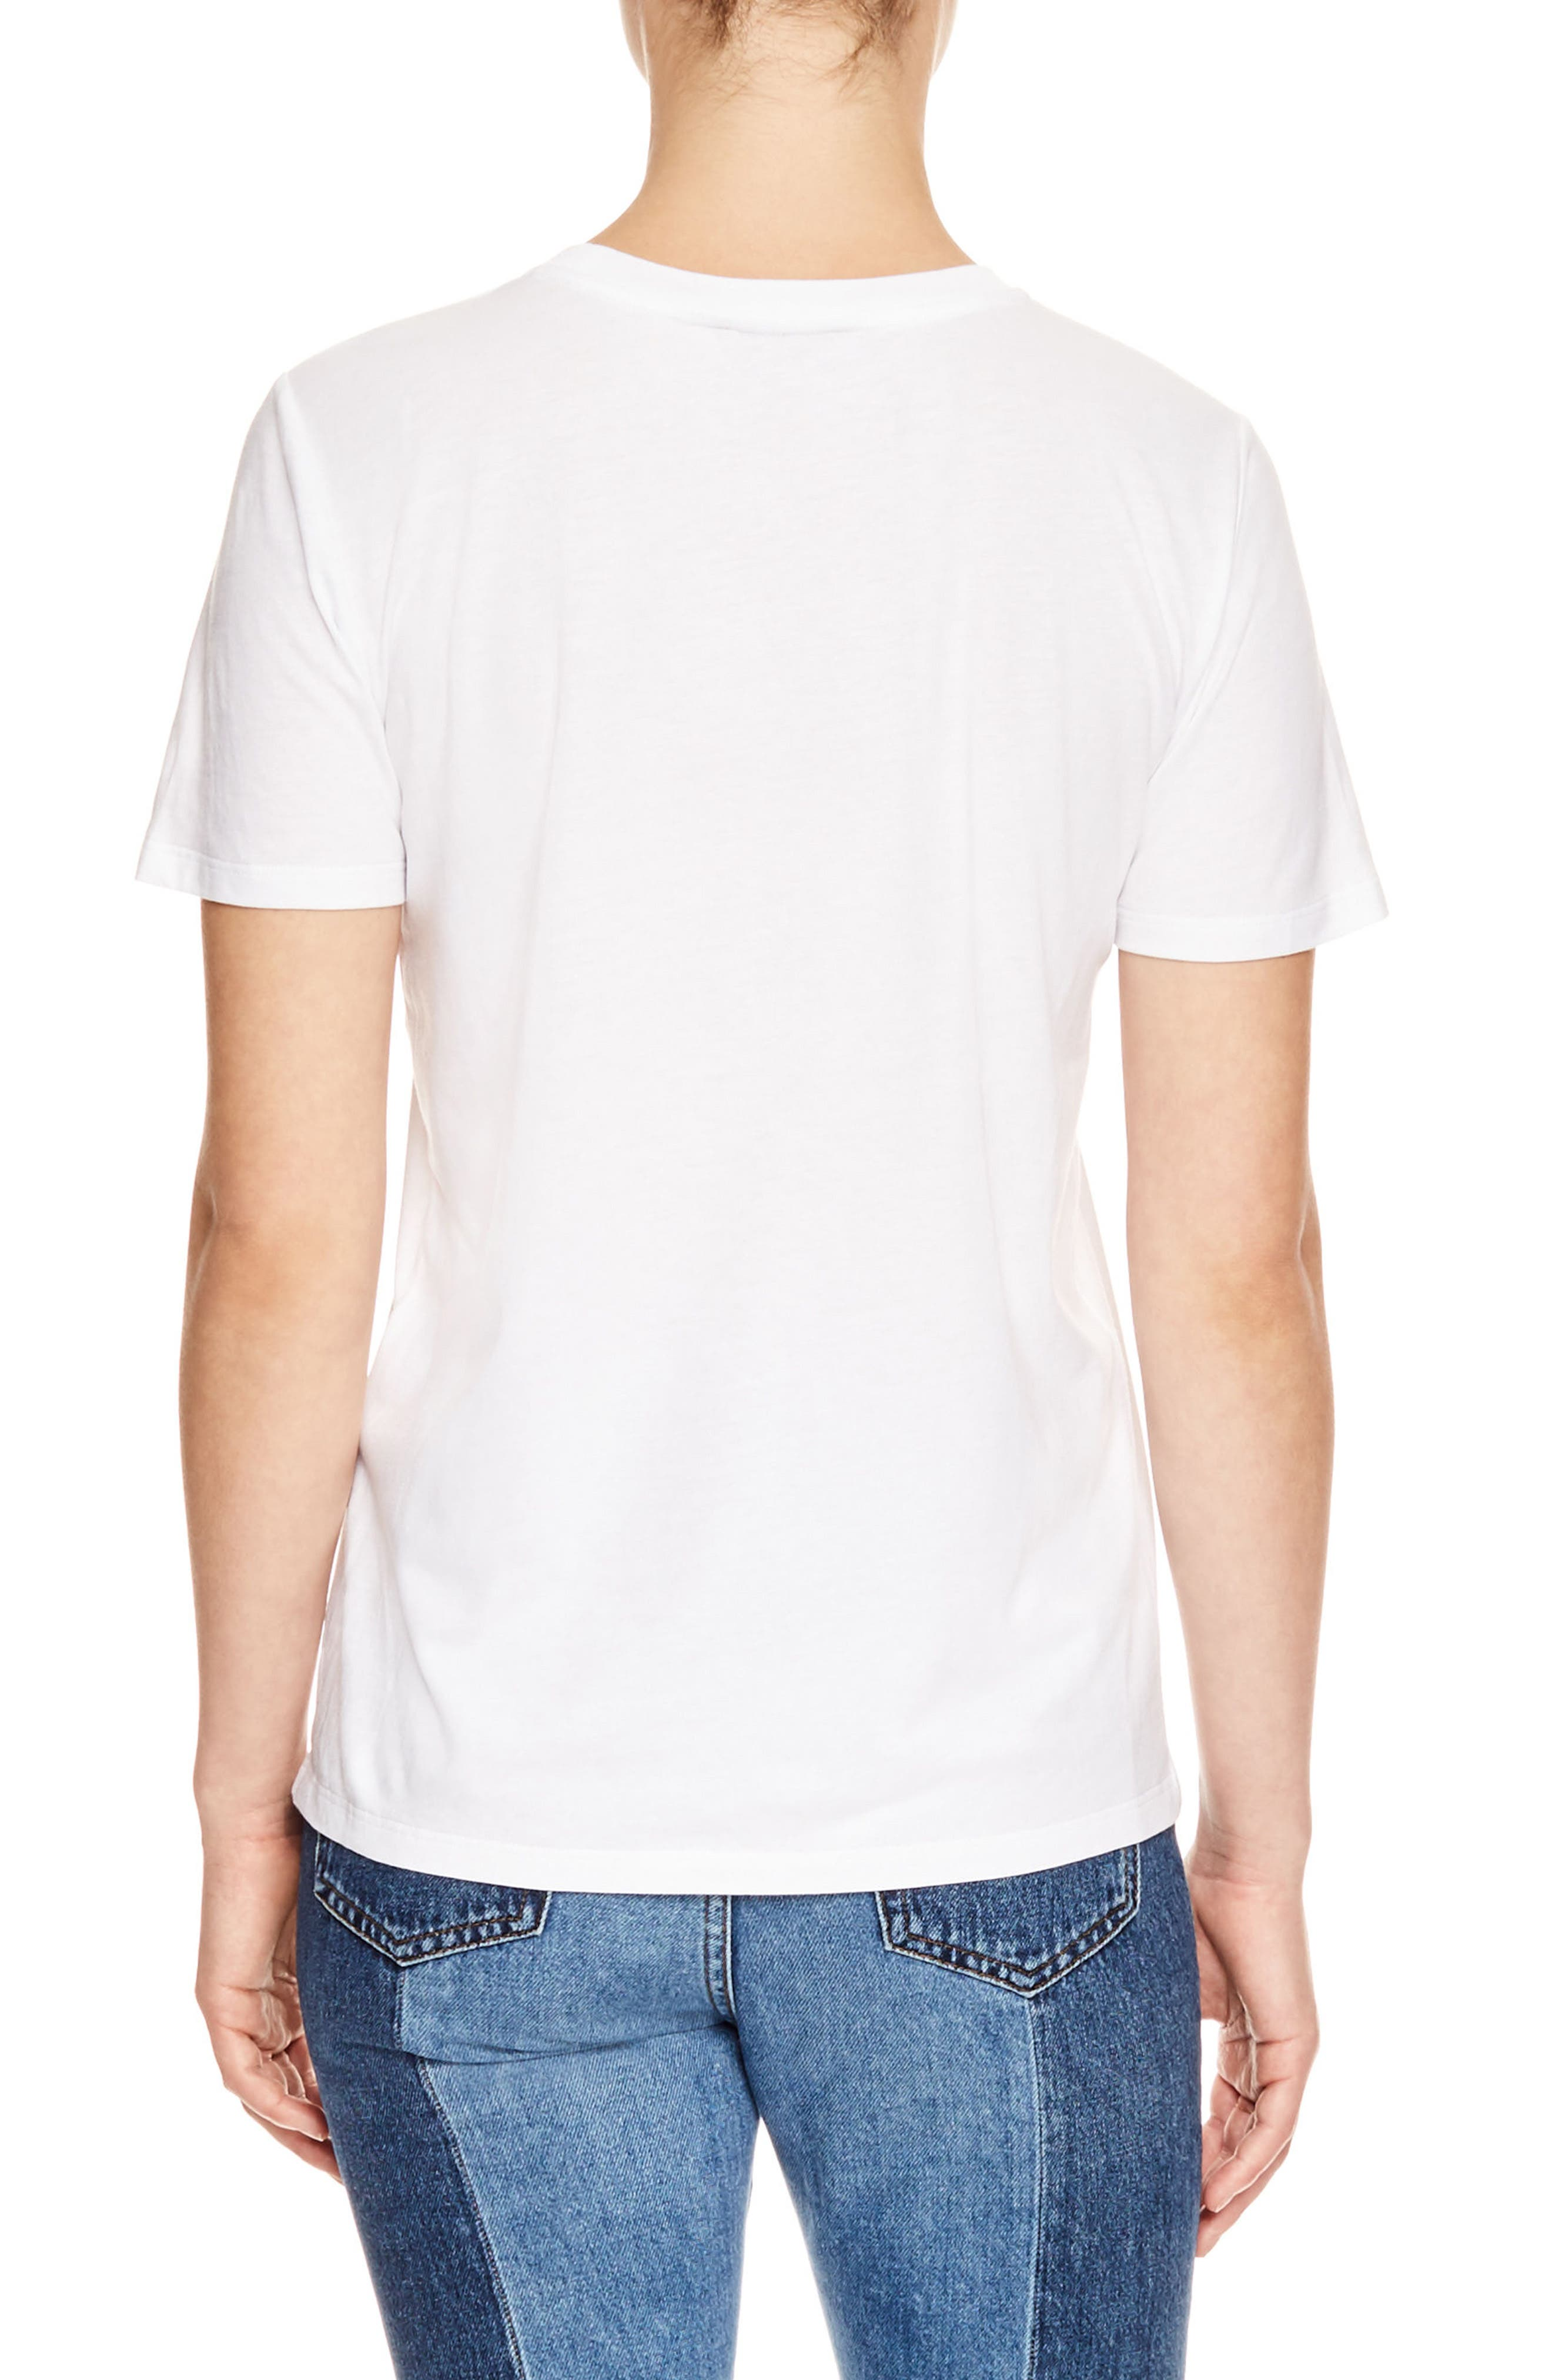 Embroidered Stamp Graphic Tee,                             Alternate thumbnail 2, color,                             100